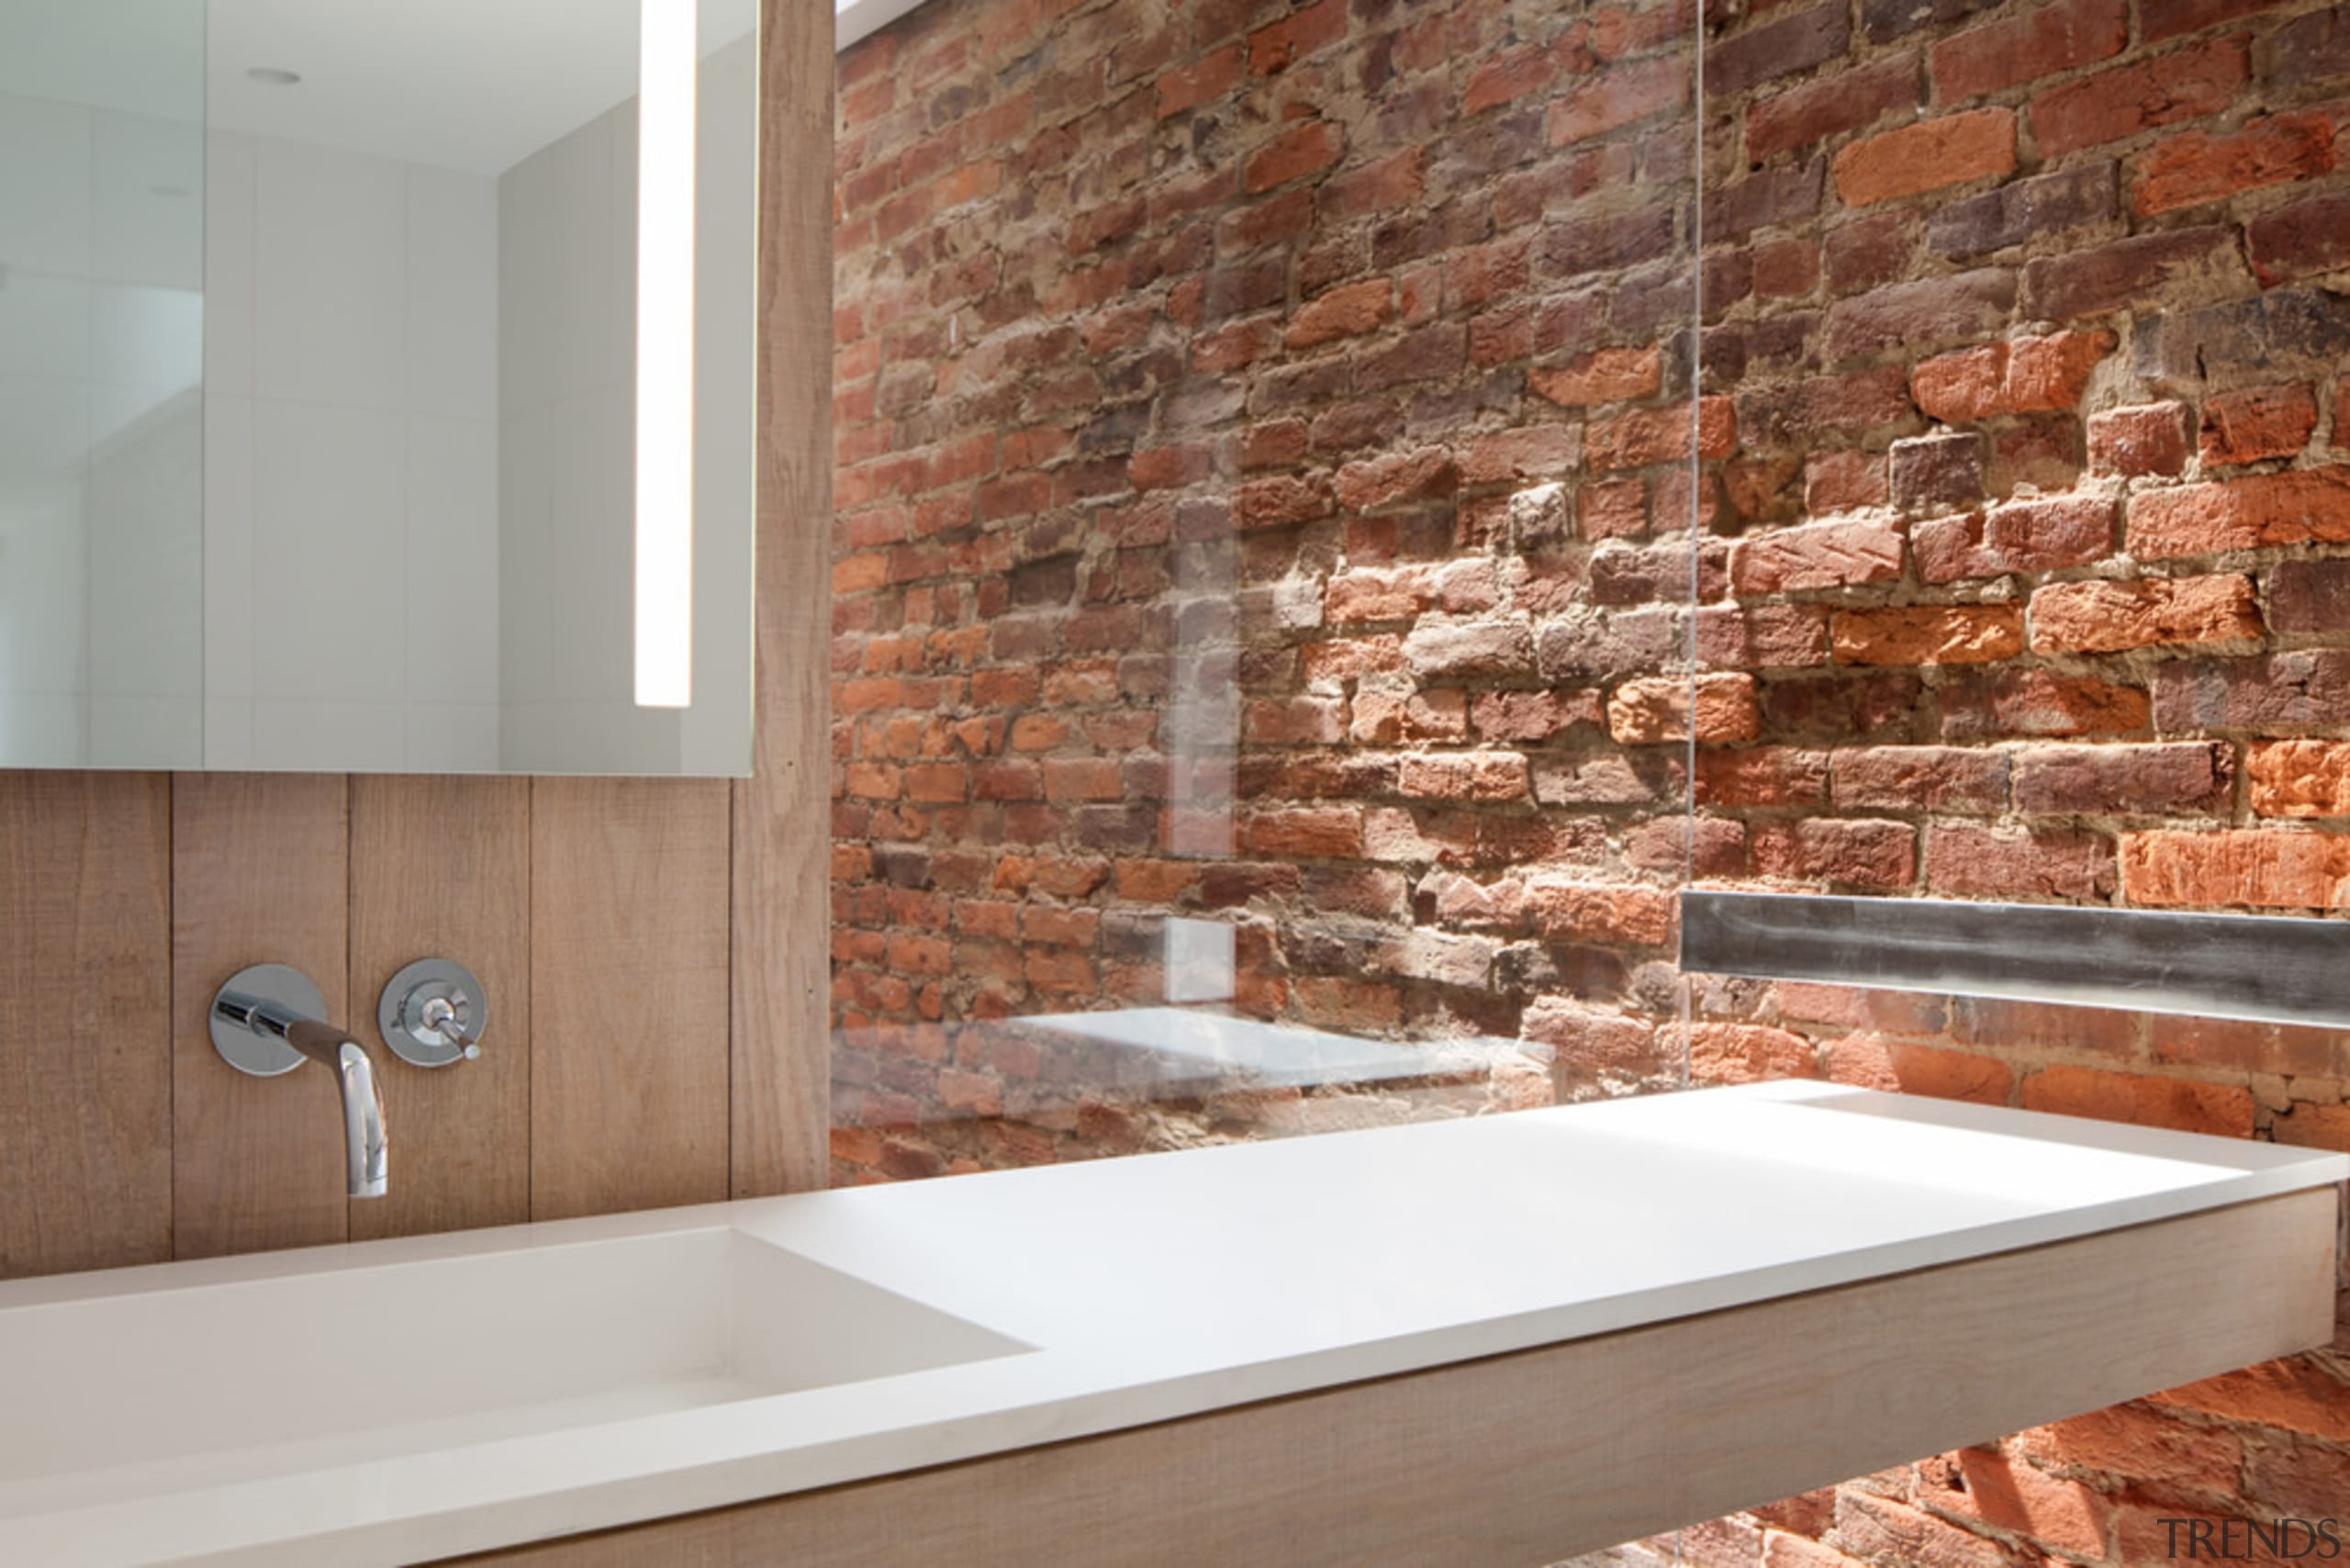 Throughout the apartment, bathroom included, the building's rugged